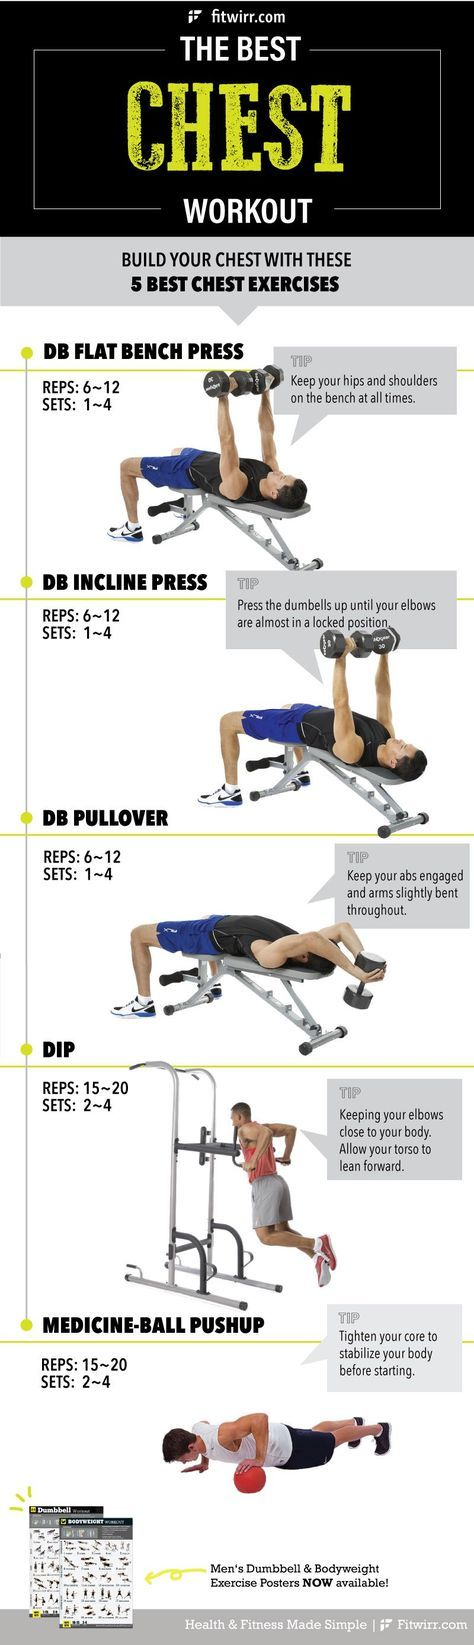 10 Best Chest Exercises For Men To Build Powerful Pecs Body